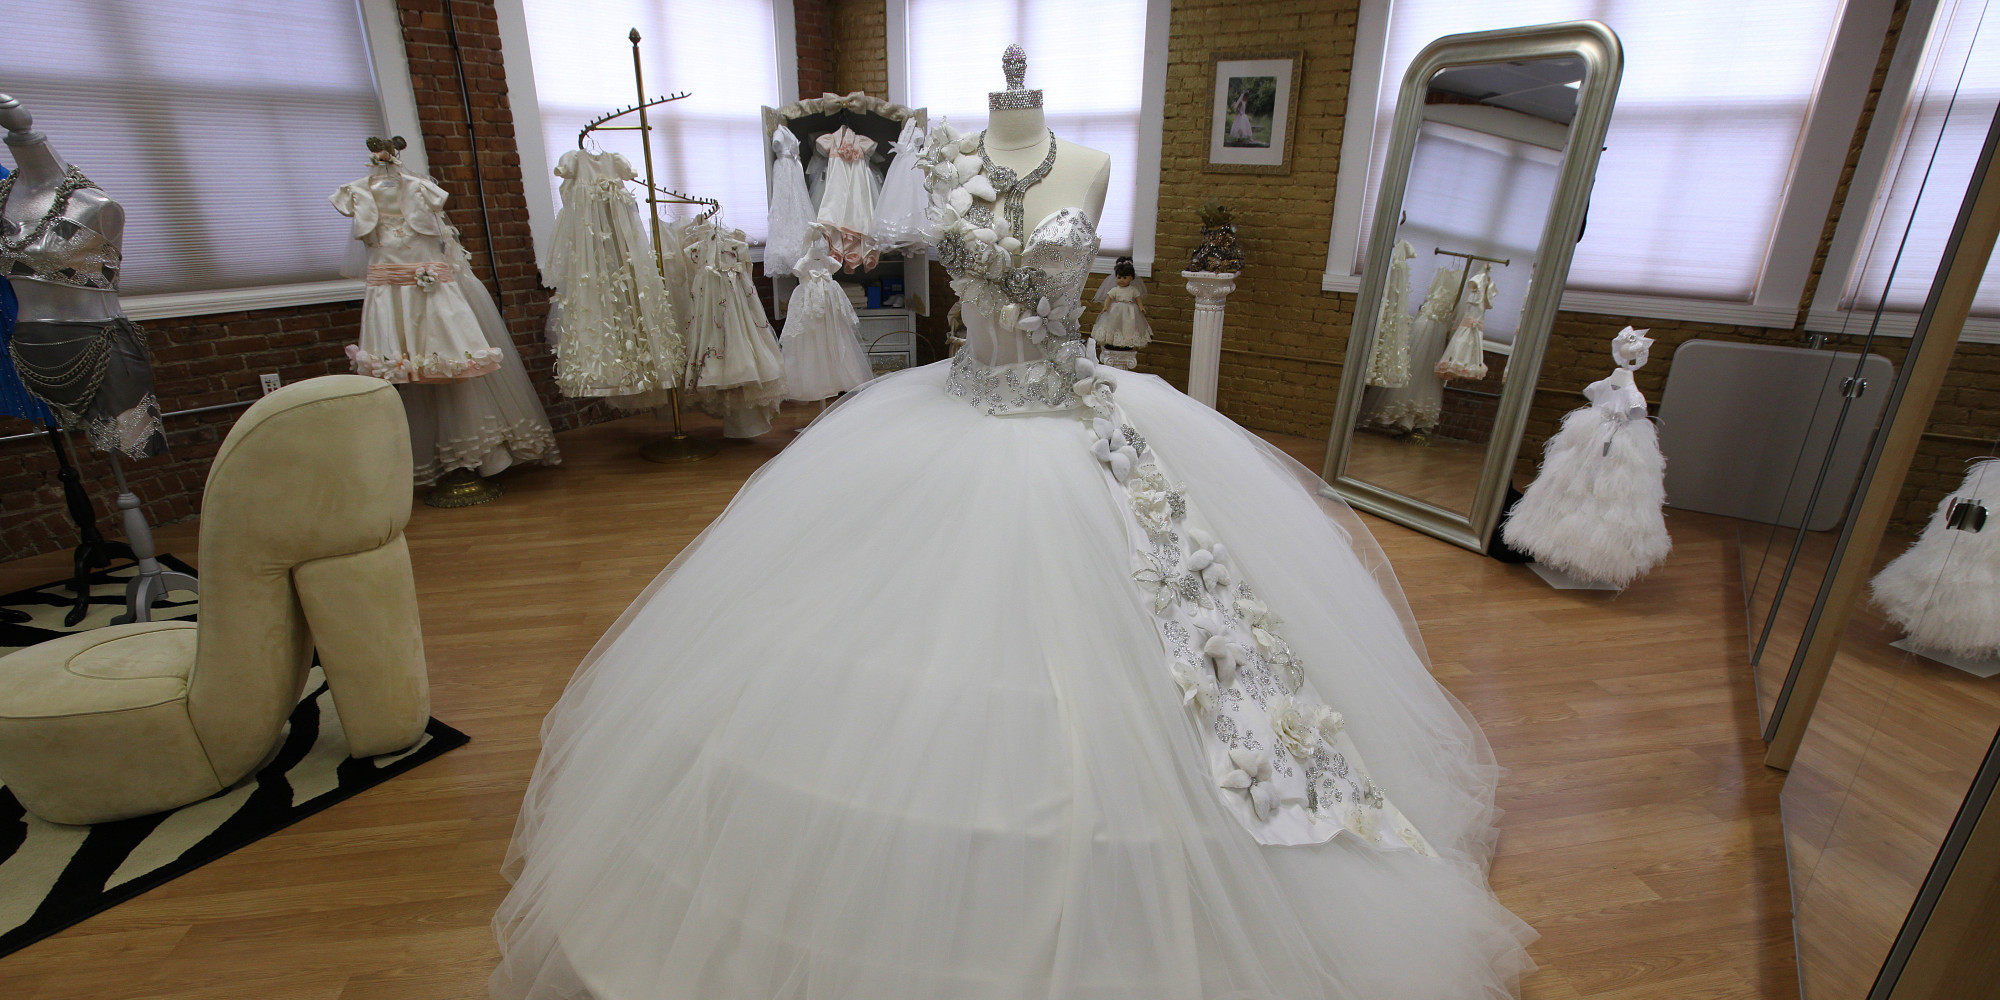 80 Pound Wedding Dresses Bedazzled In Jewels This Gypsy Designer Has Seen It All